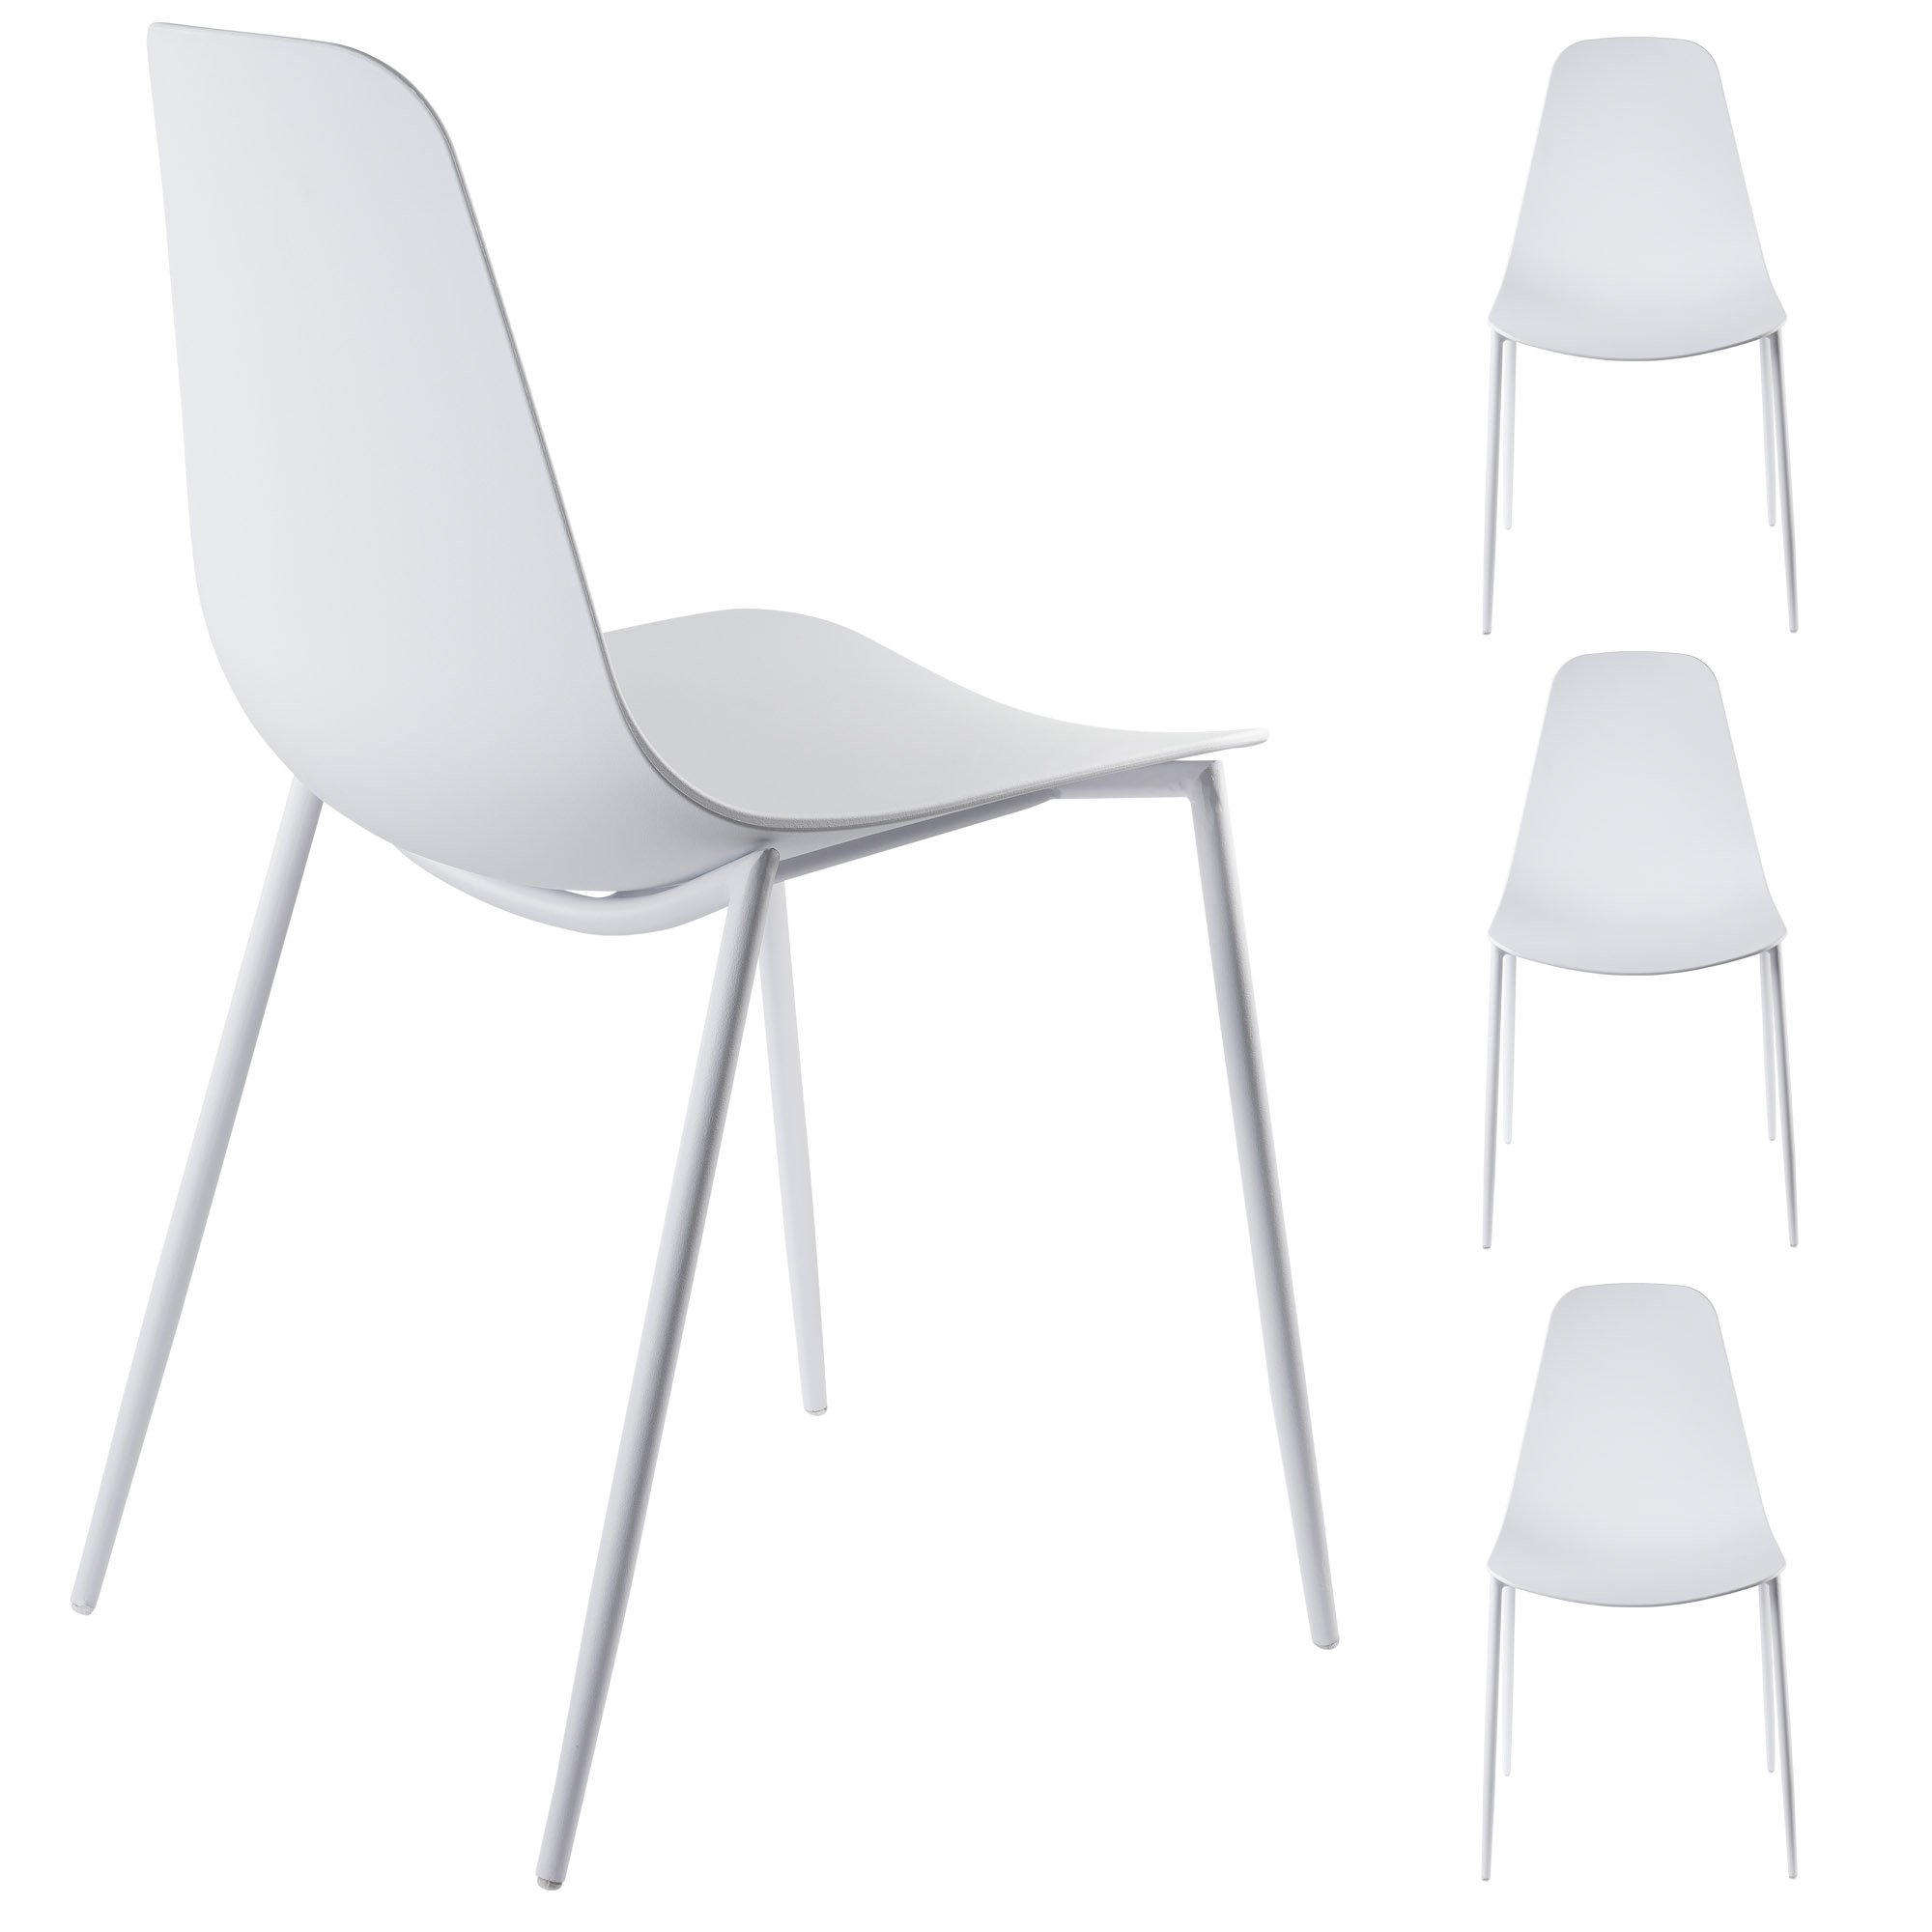 Alessia Set of 4 White Dining Chairs - Mid Century Modern Style ...